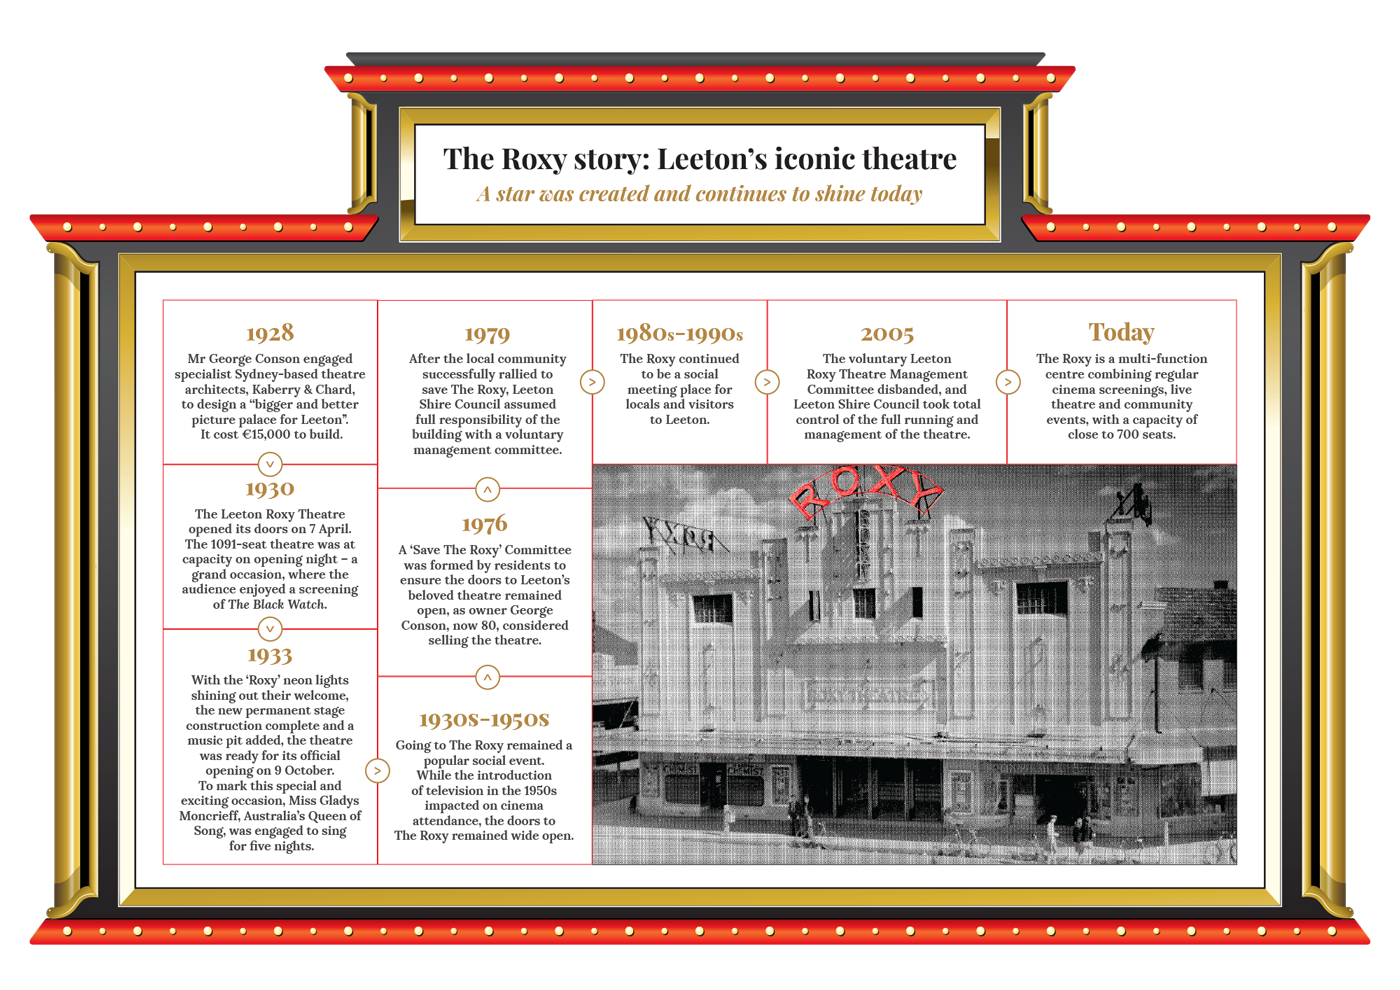 The Roxy historical timeline